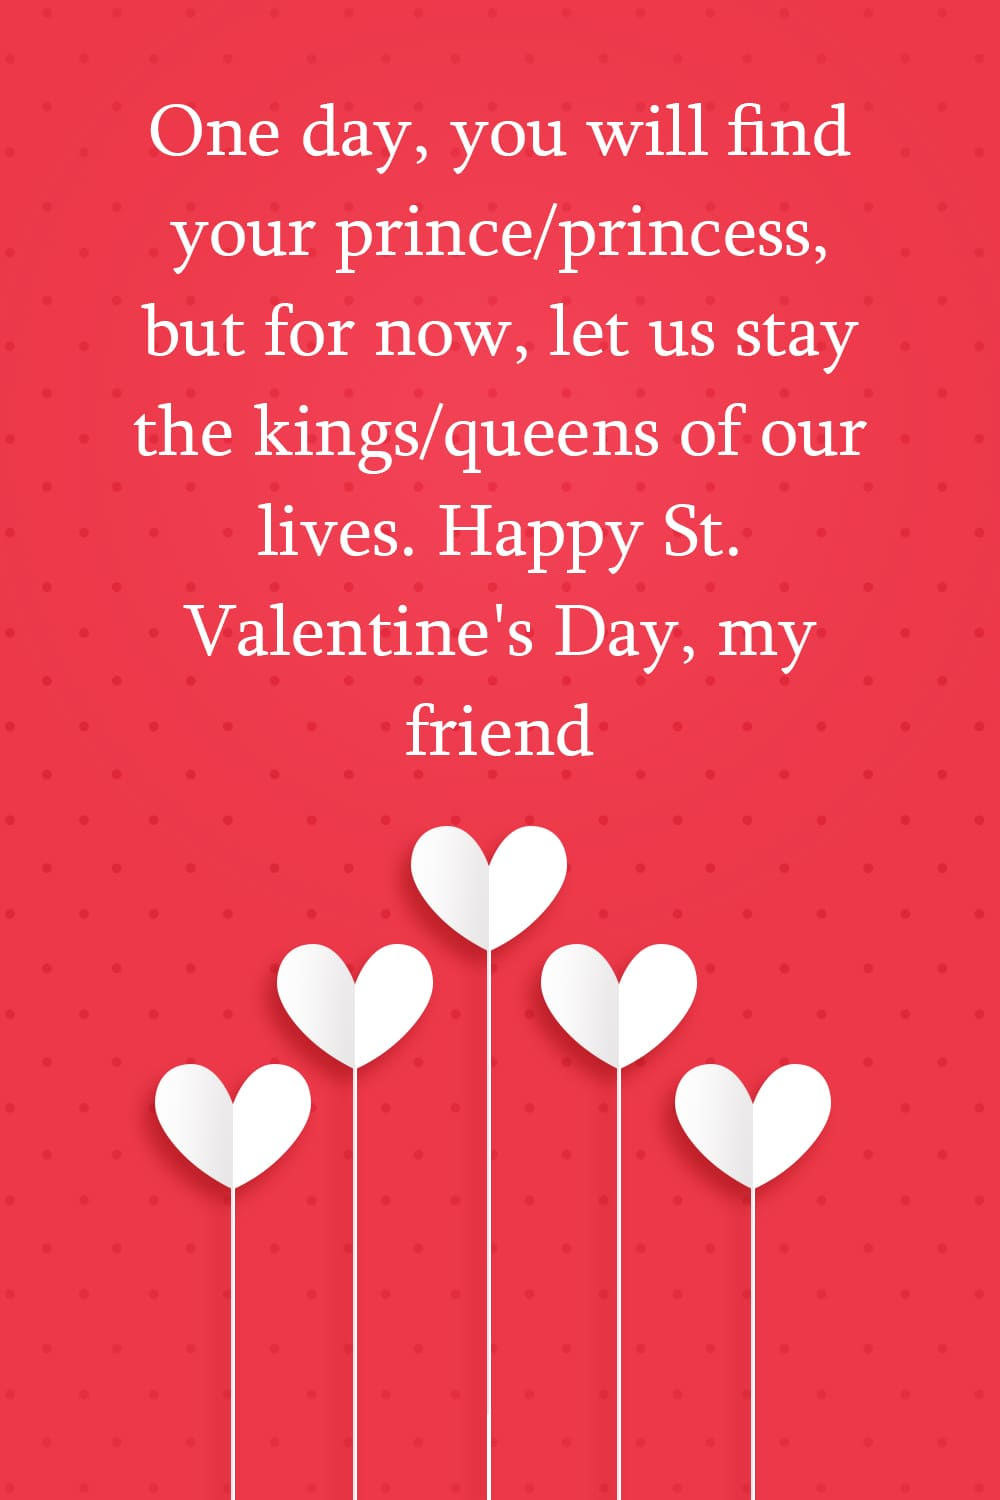 One day, you will find your prince/princess, but for now, let us stay the kings/queens of our lives. Happy St. Valentine's Day, my friend.